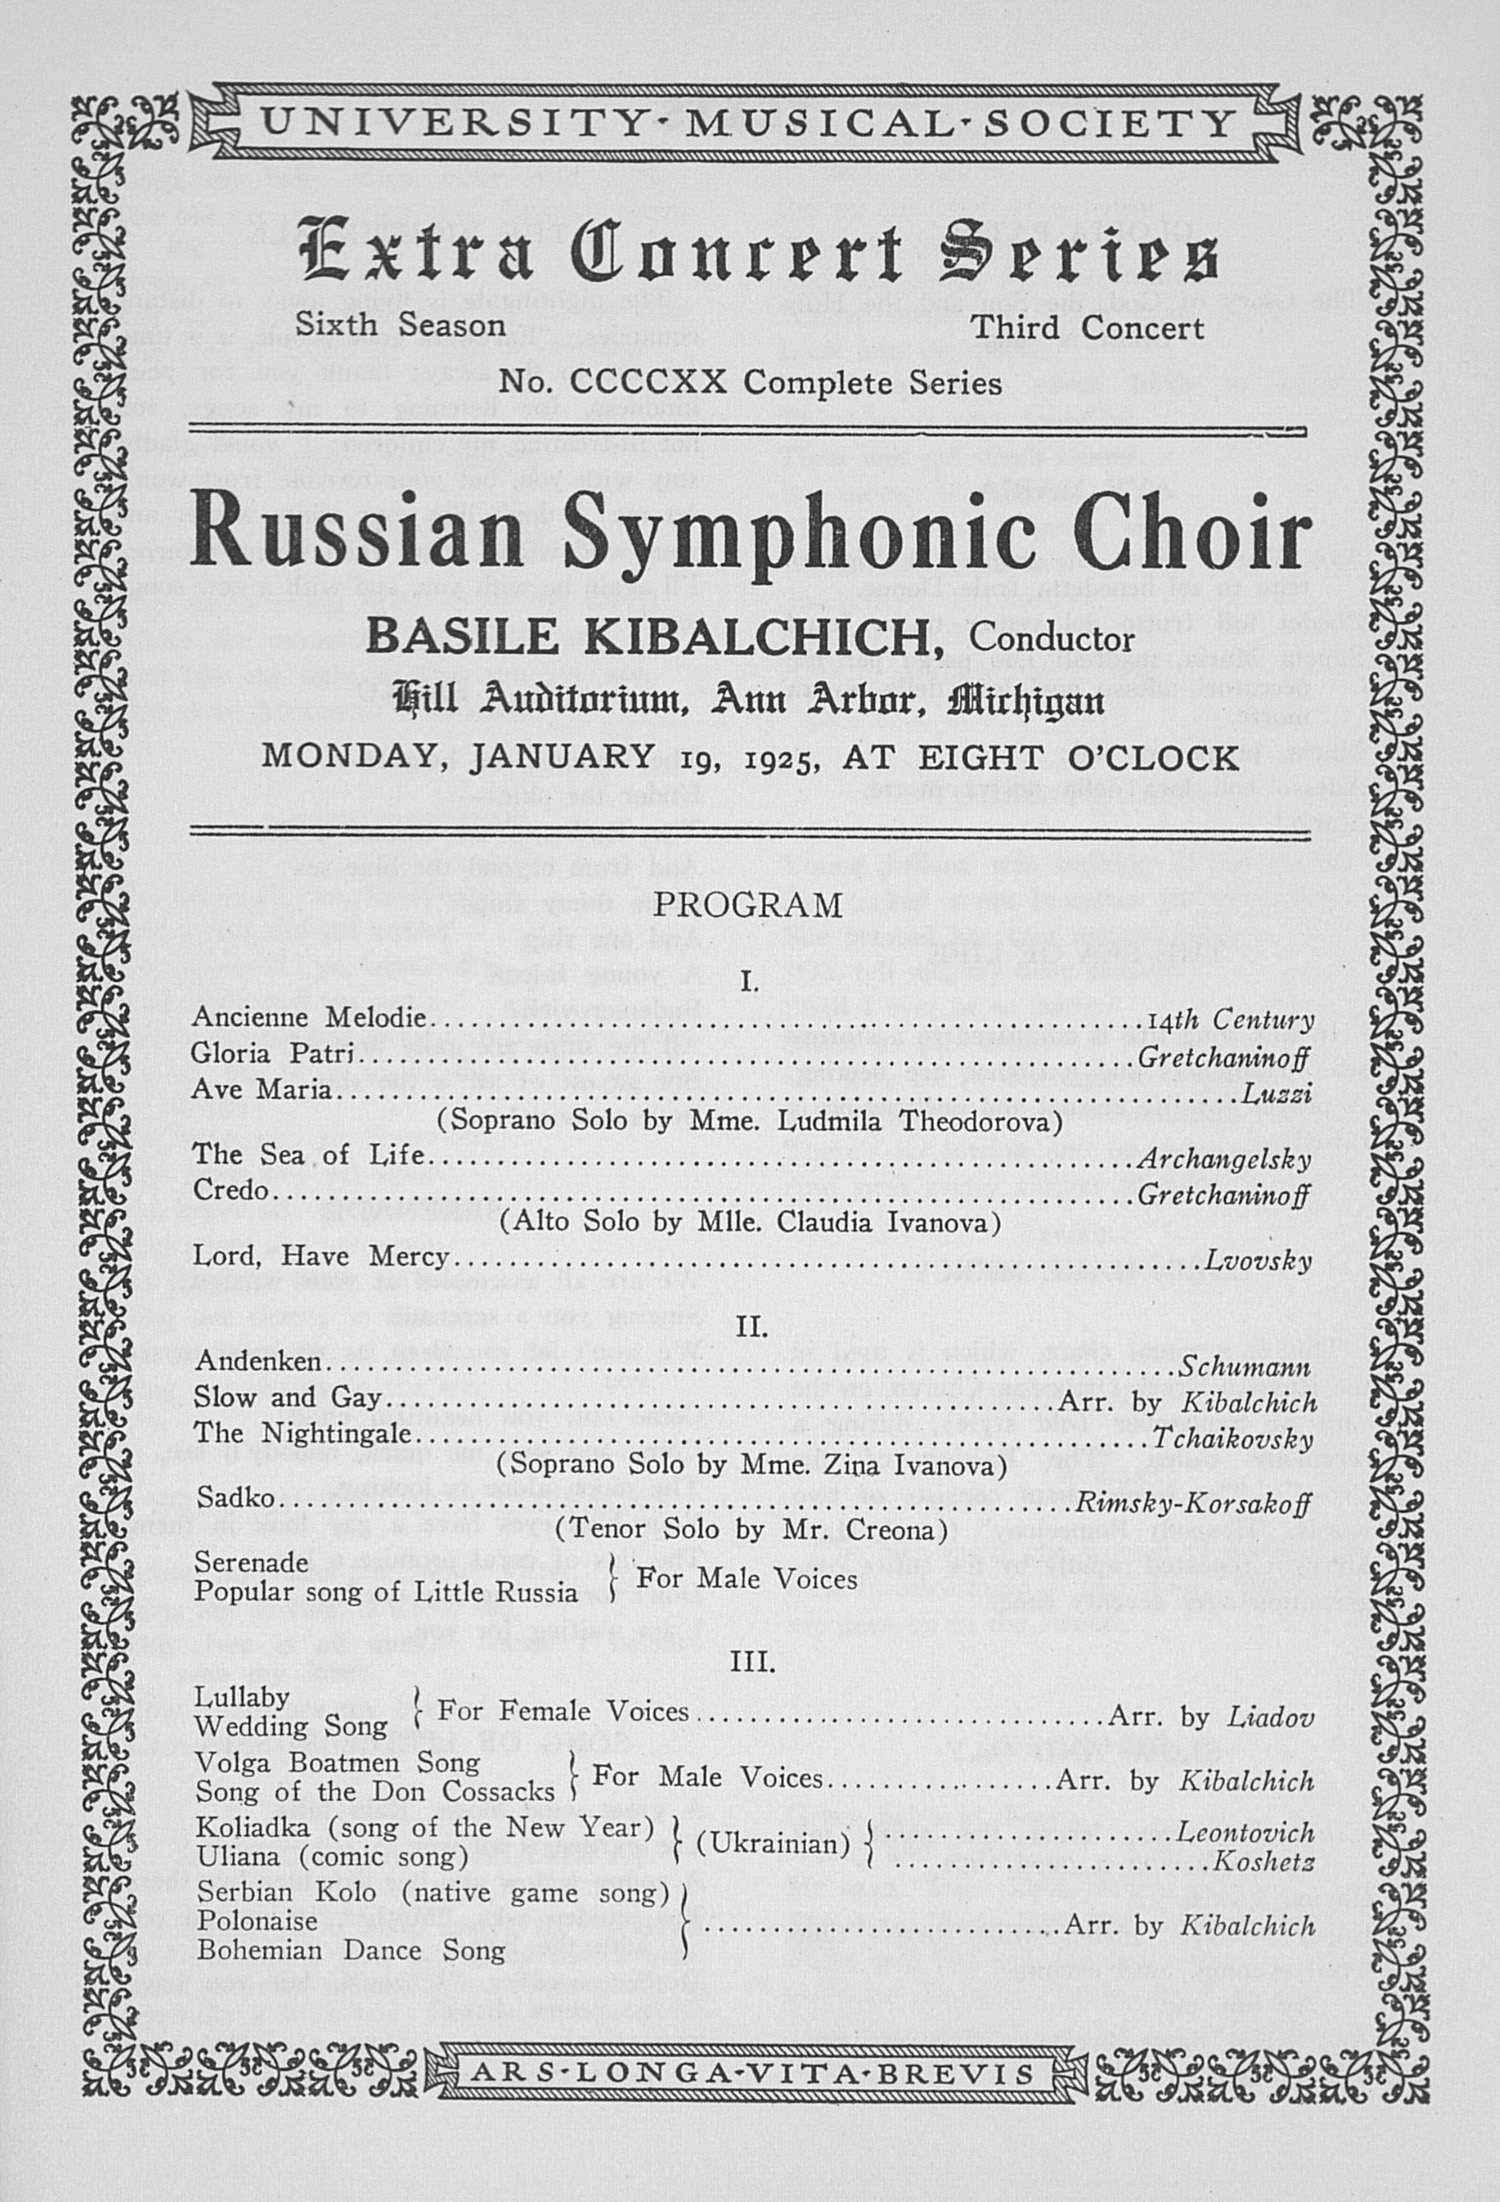 UMS Concert Program, January 19, 1925: Russian Symphonic Choir -- Basile Kibalchich image